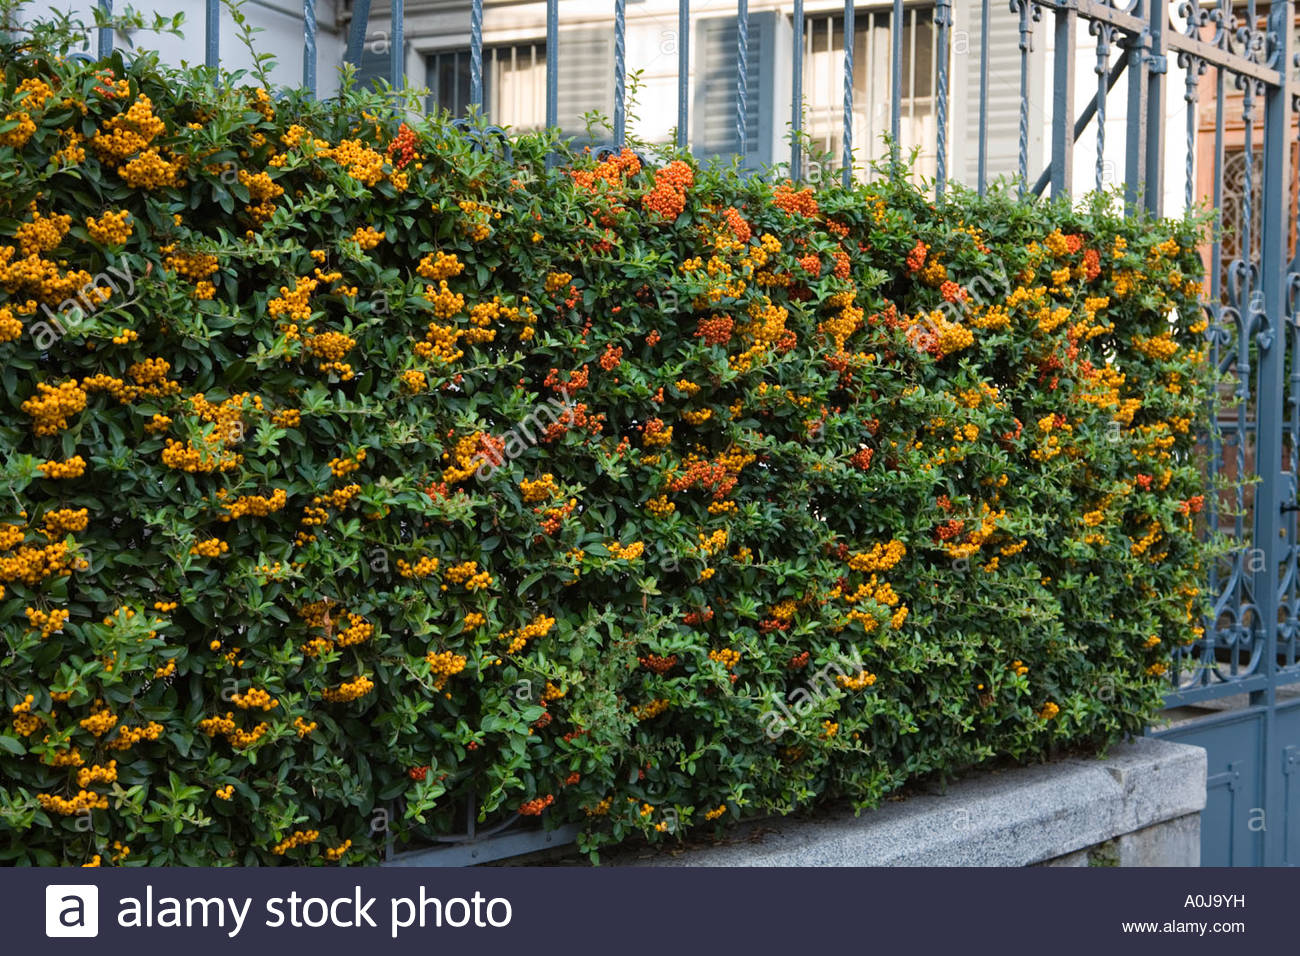 Pyracantha bush covered in berries stock photo royalty for Piracanta pianta